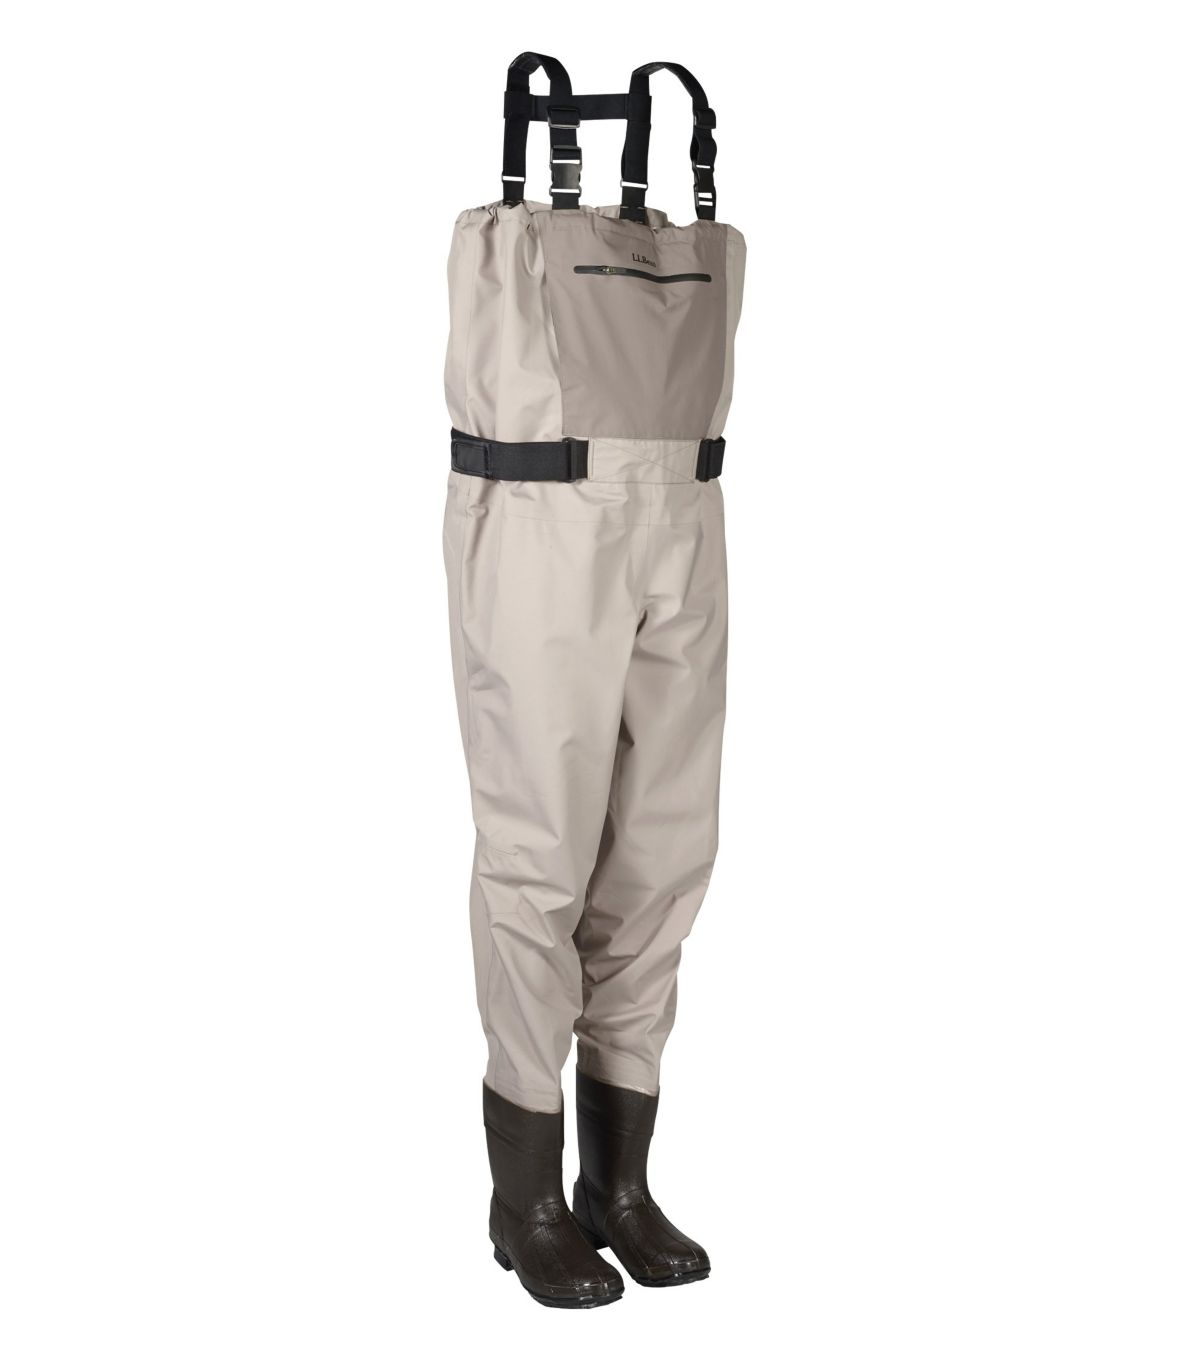 Men's L.L.Bean Emerger Waders with Super Seam Technology, Boot-Foot